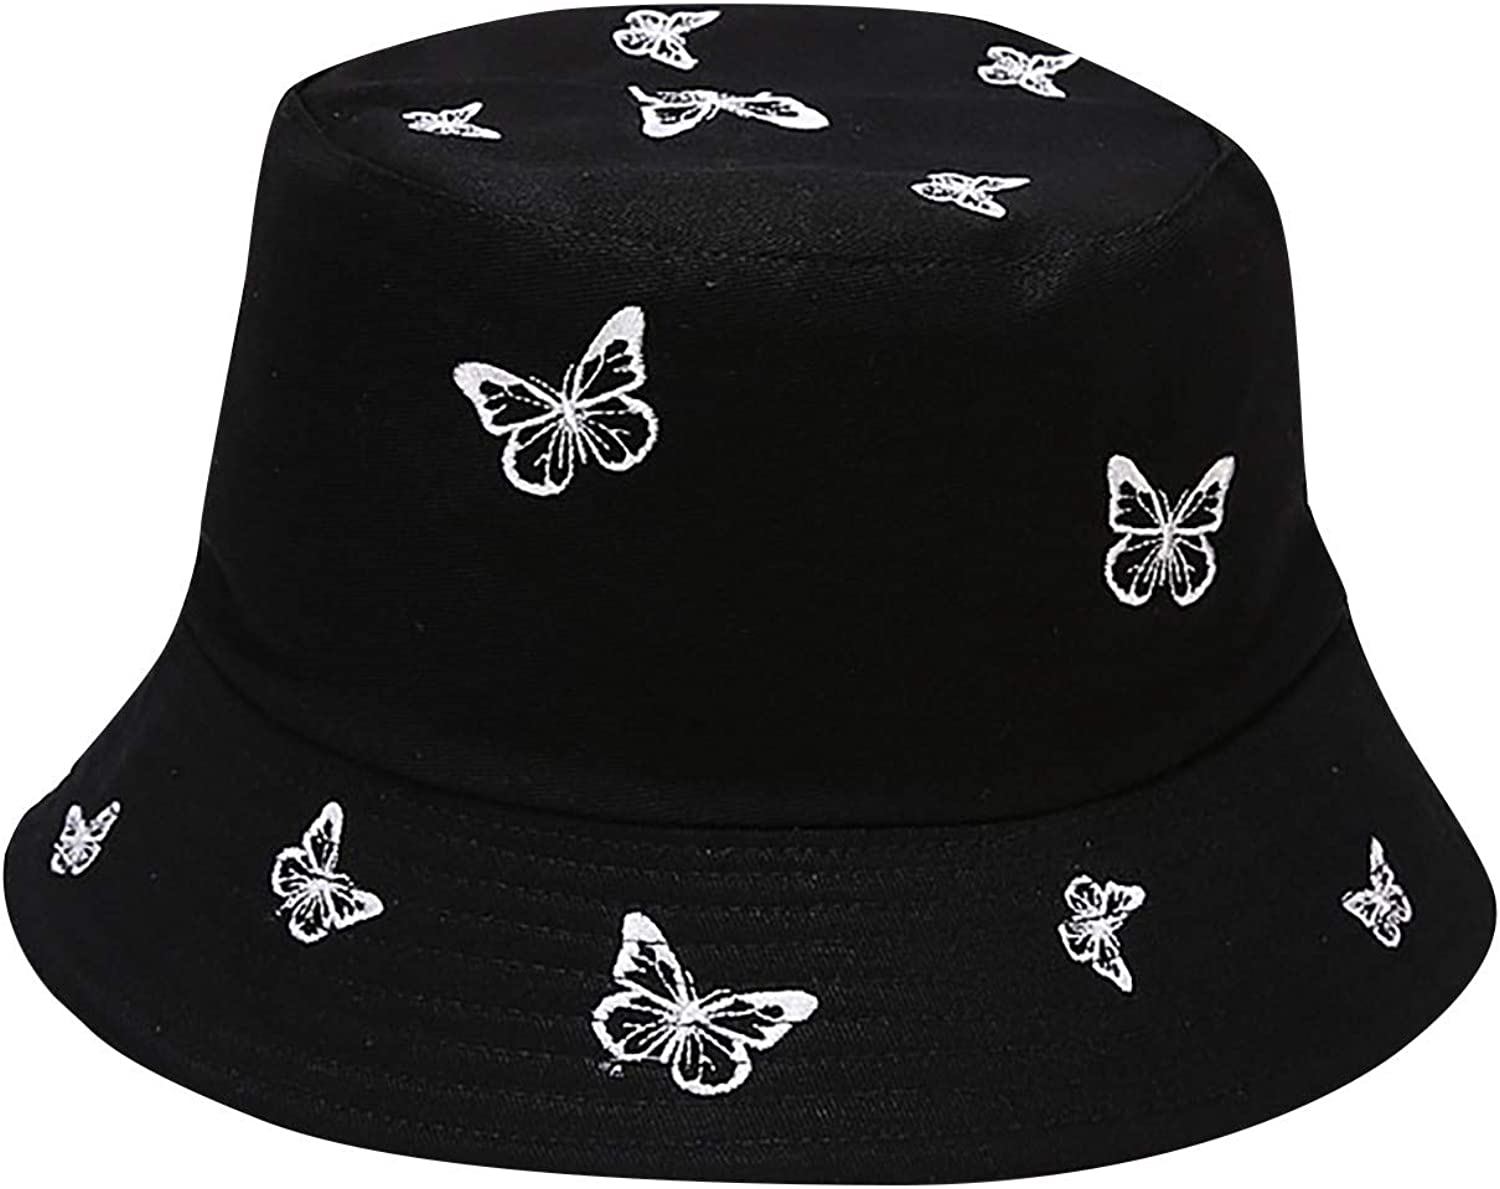 Sun Hats for Women Summer Wide Brim UV Foldable Straw Beach Hat Packable Bow Bucket Hats Outdoor Fisherman's Caps